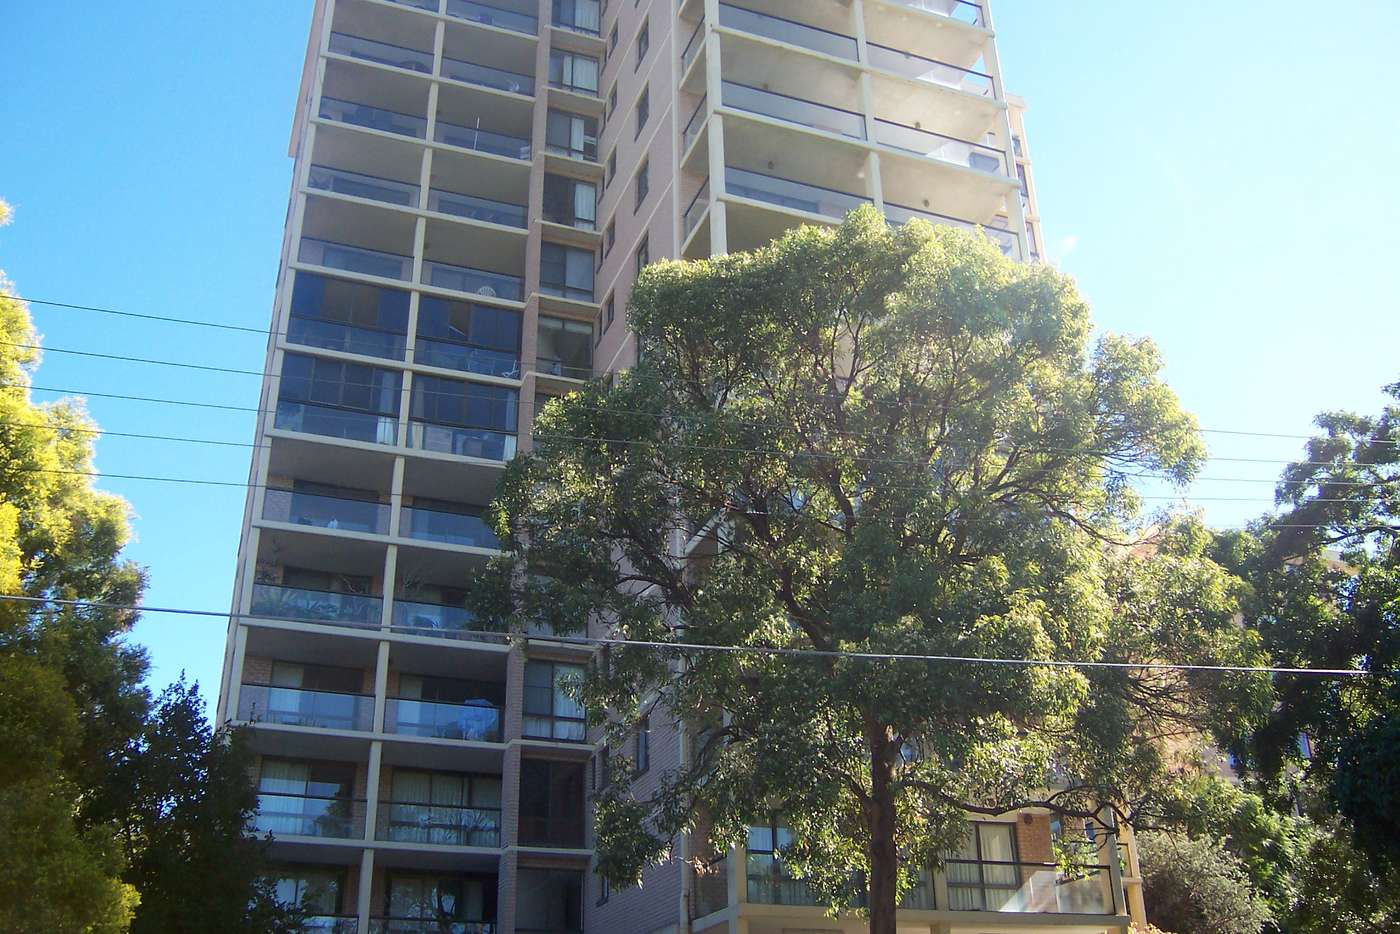 Main view of Homely unit listing, 51/12 Bryce Street, St Lucia QLD 4067